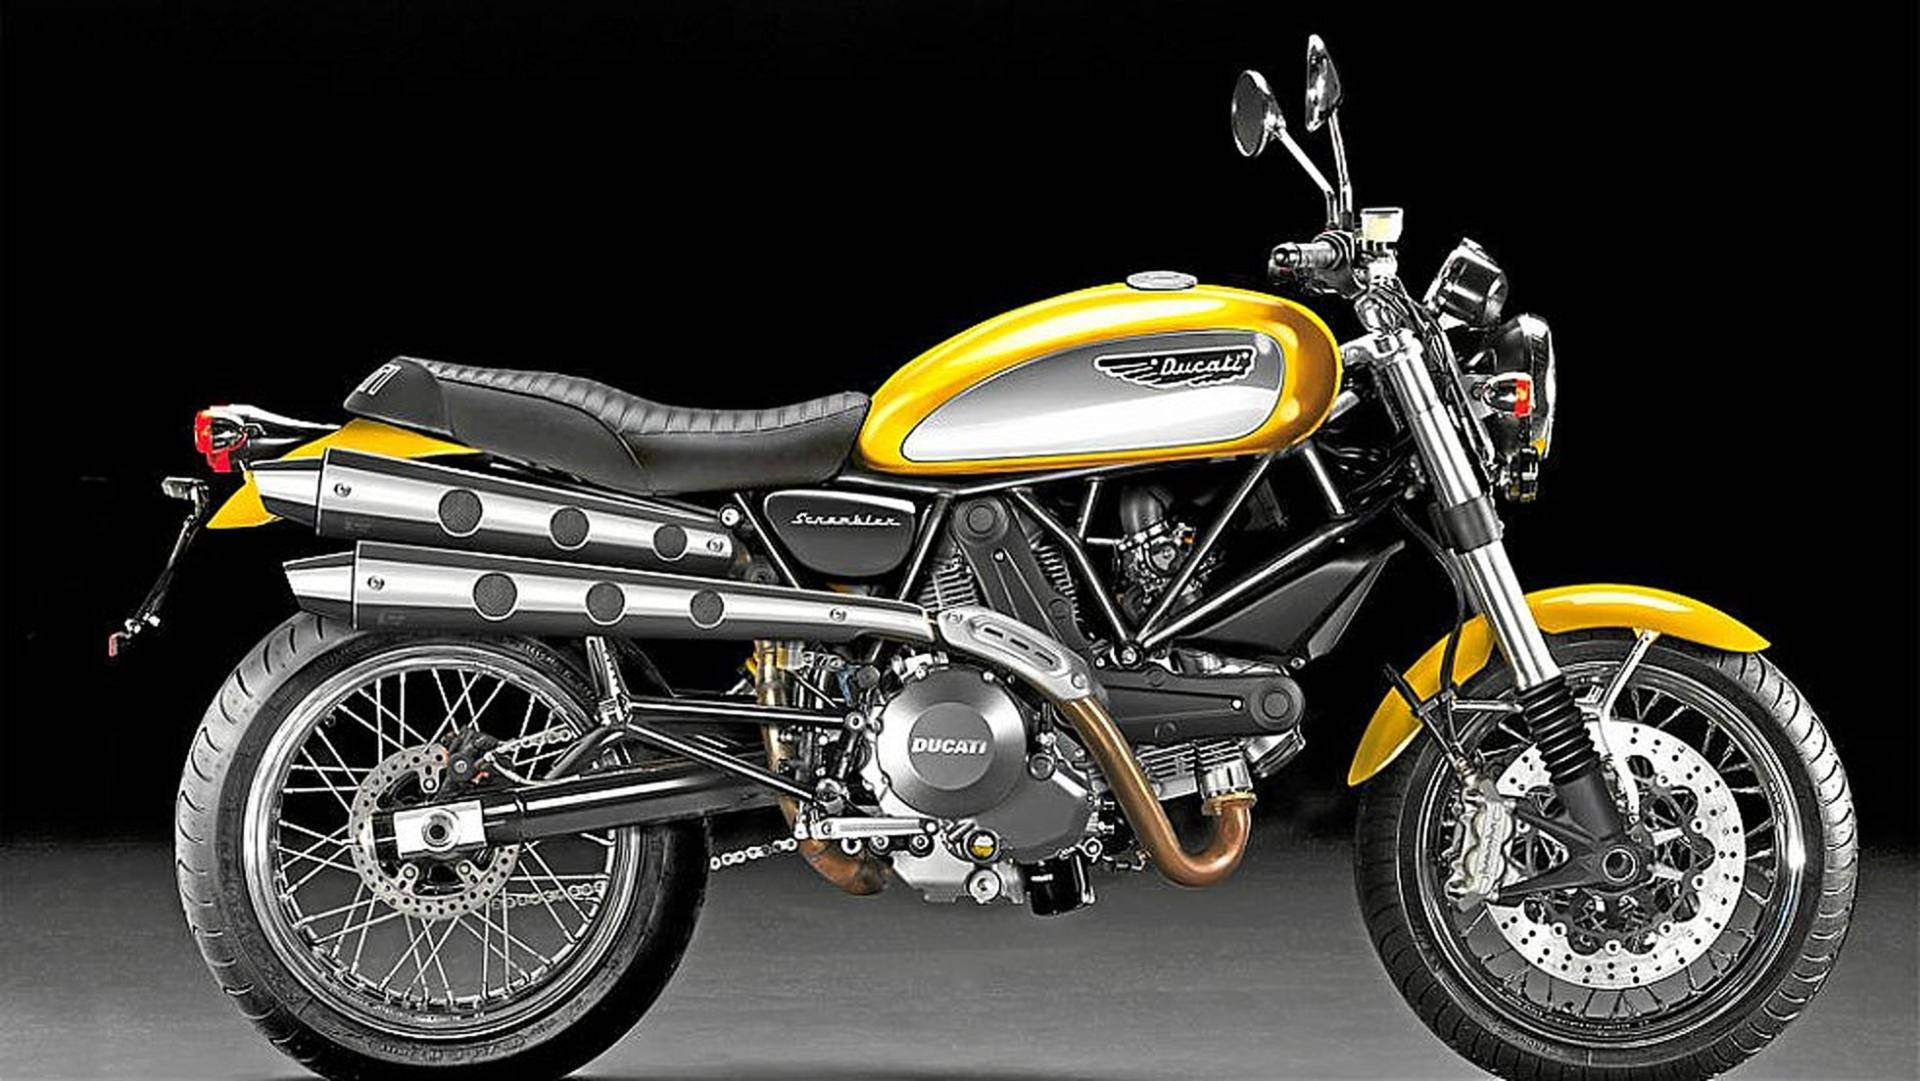 Listen To The Blissful Sound Of The All New Ducati Scrambler With